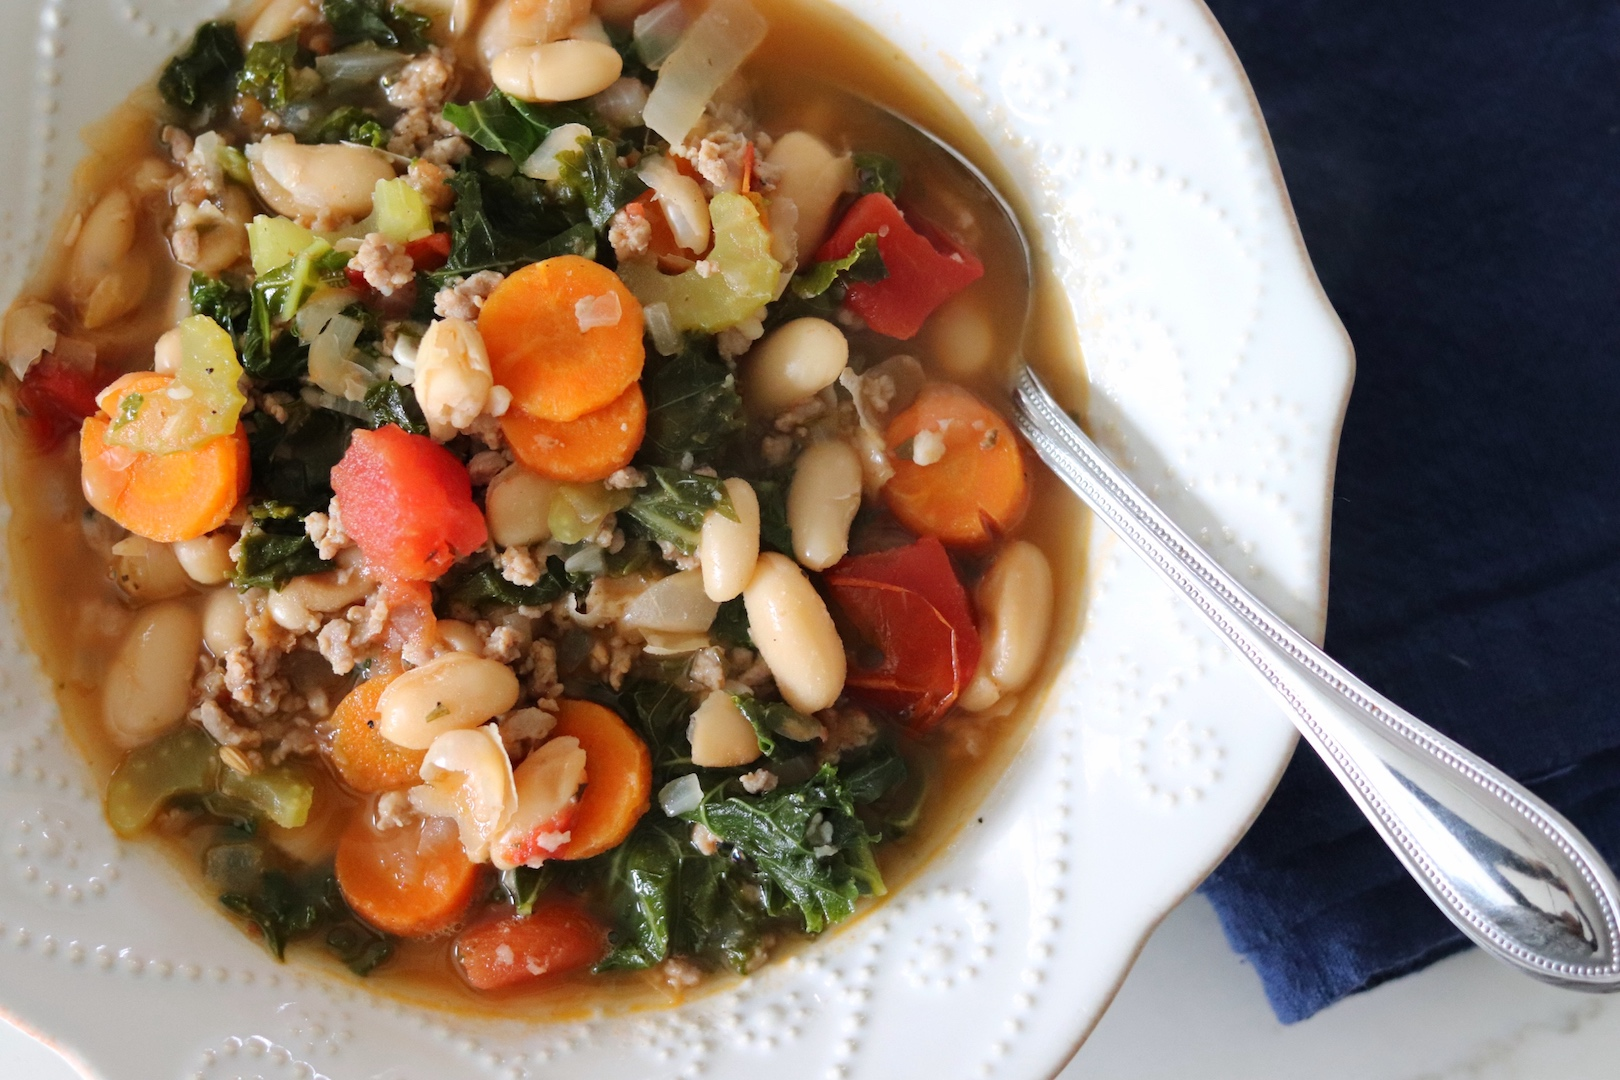 A bowl of Italian Turkey Sausage, Kale and White Bean Soup